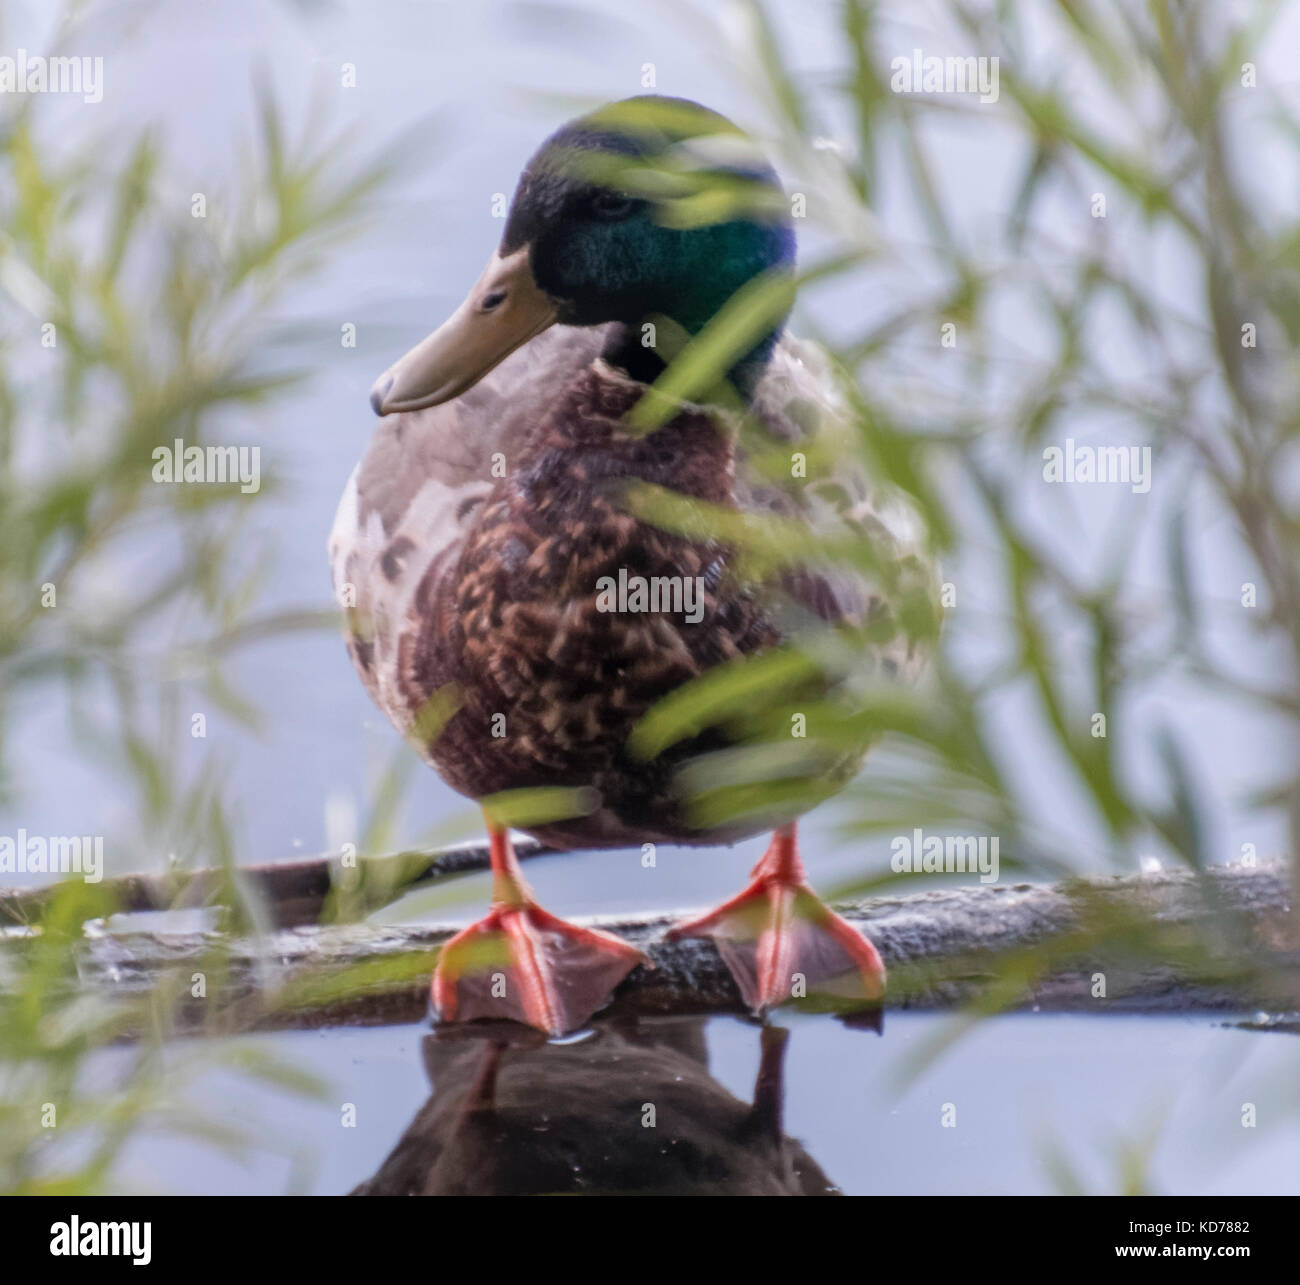 A duck standing on a partially submerged log in Minnesota. - Stock Image